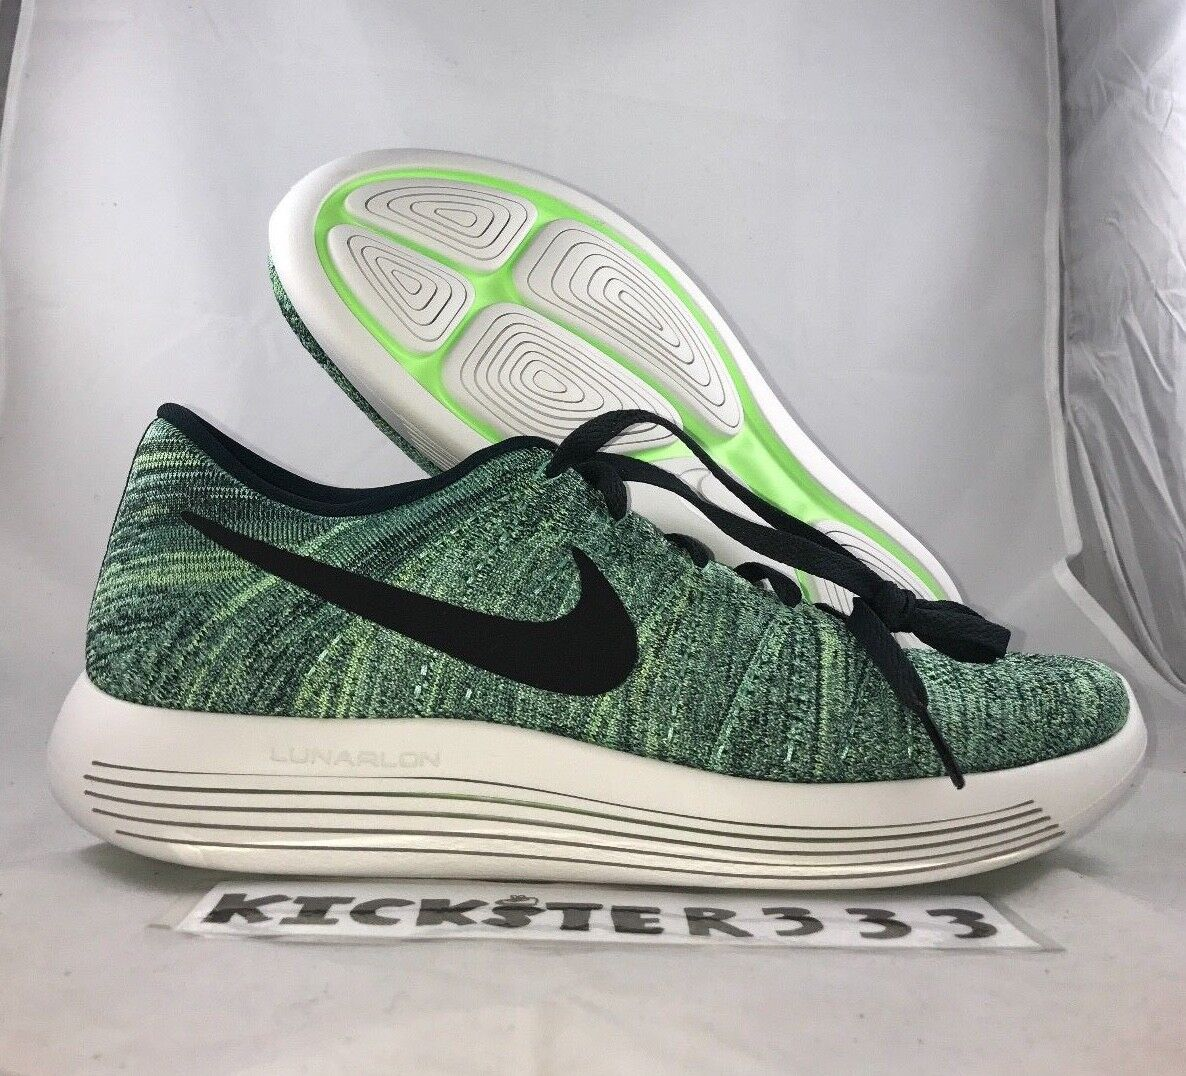 Nike Lunarepic Low Flyknit Green Black Running Shoes 843764-300 Men's 8-9 NEW